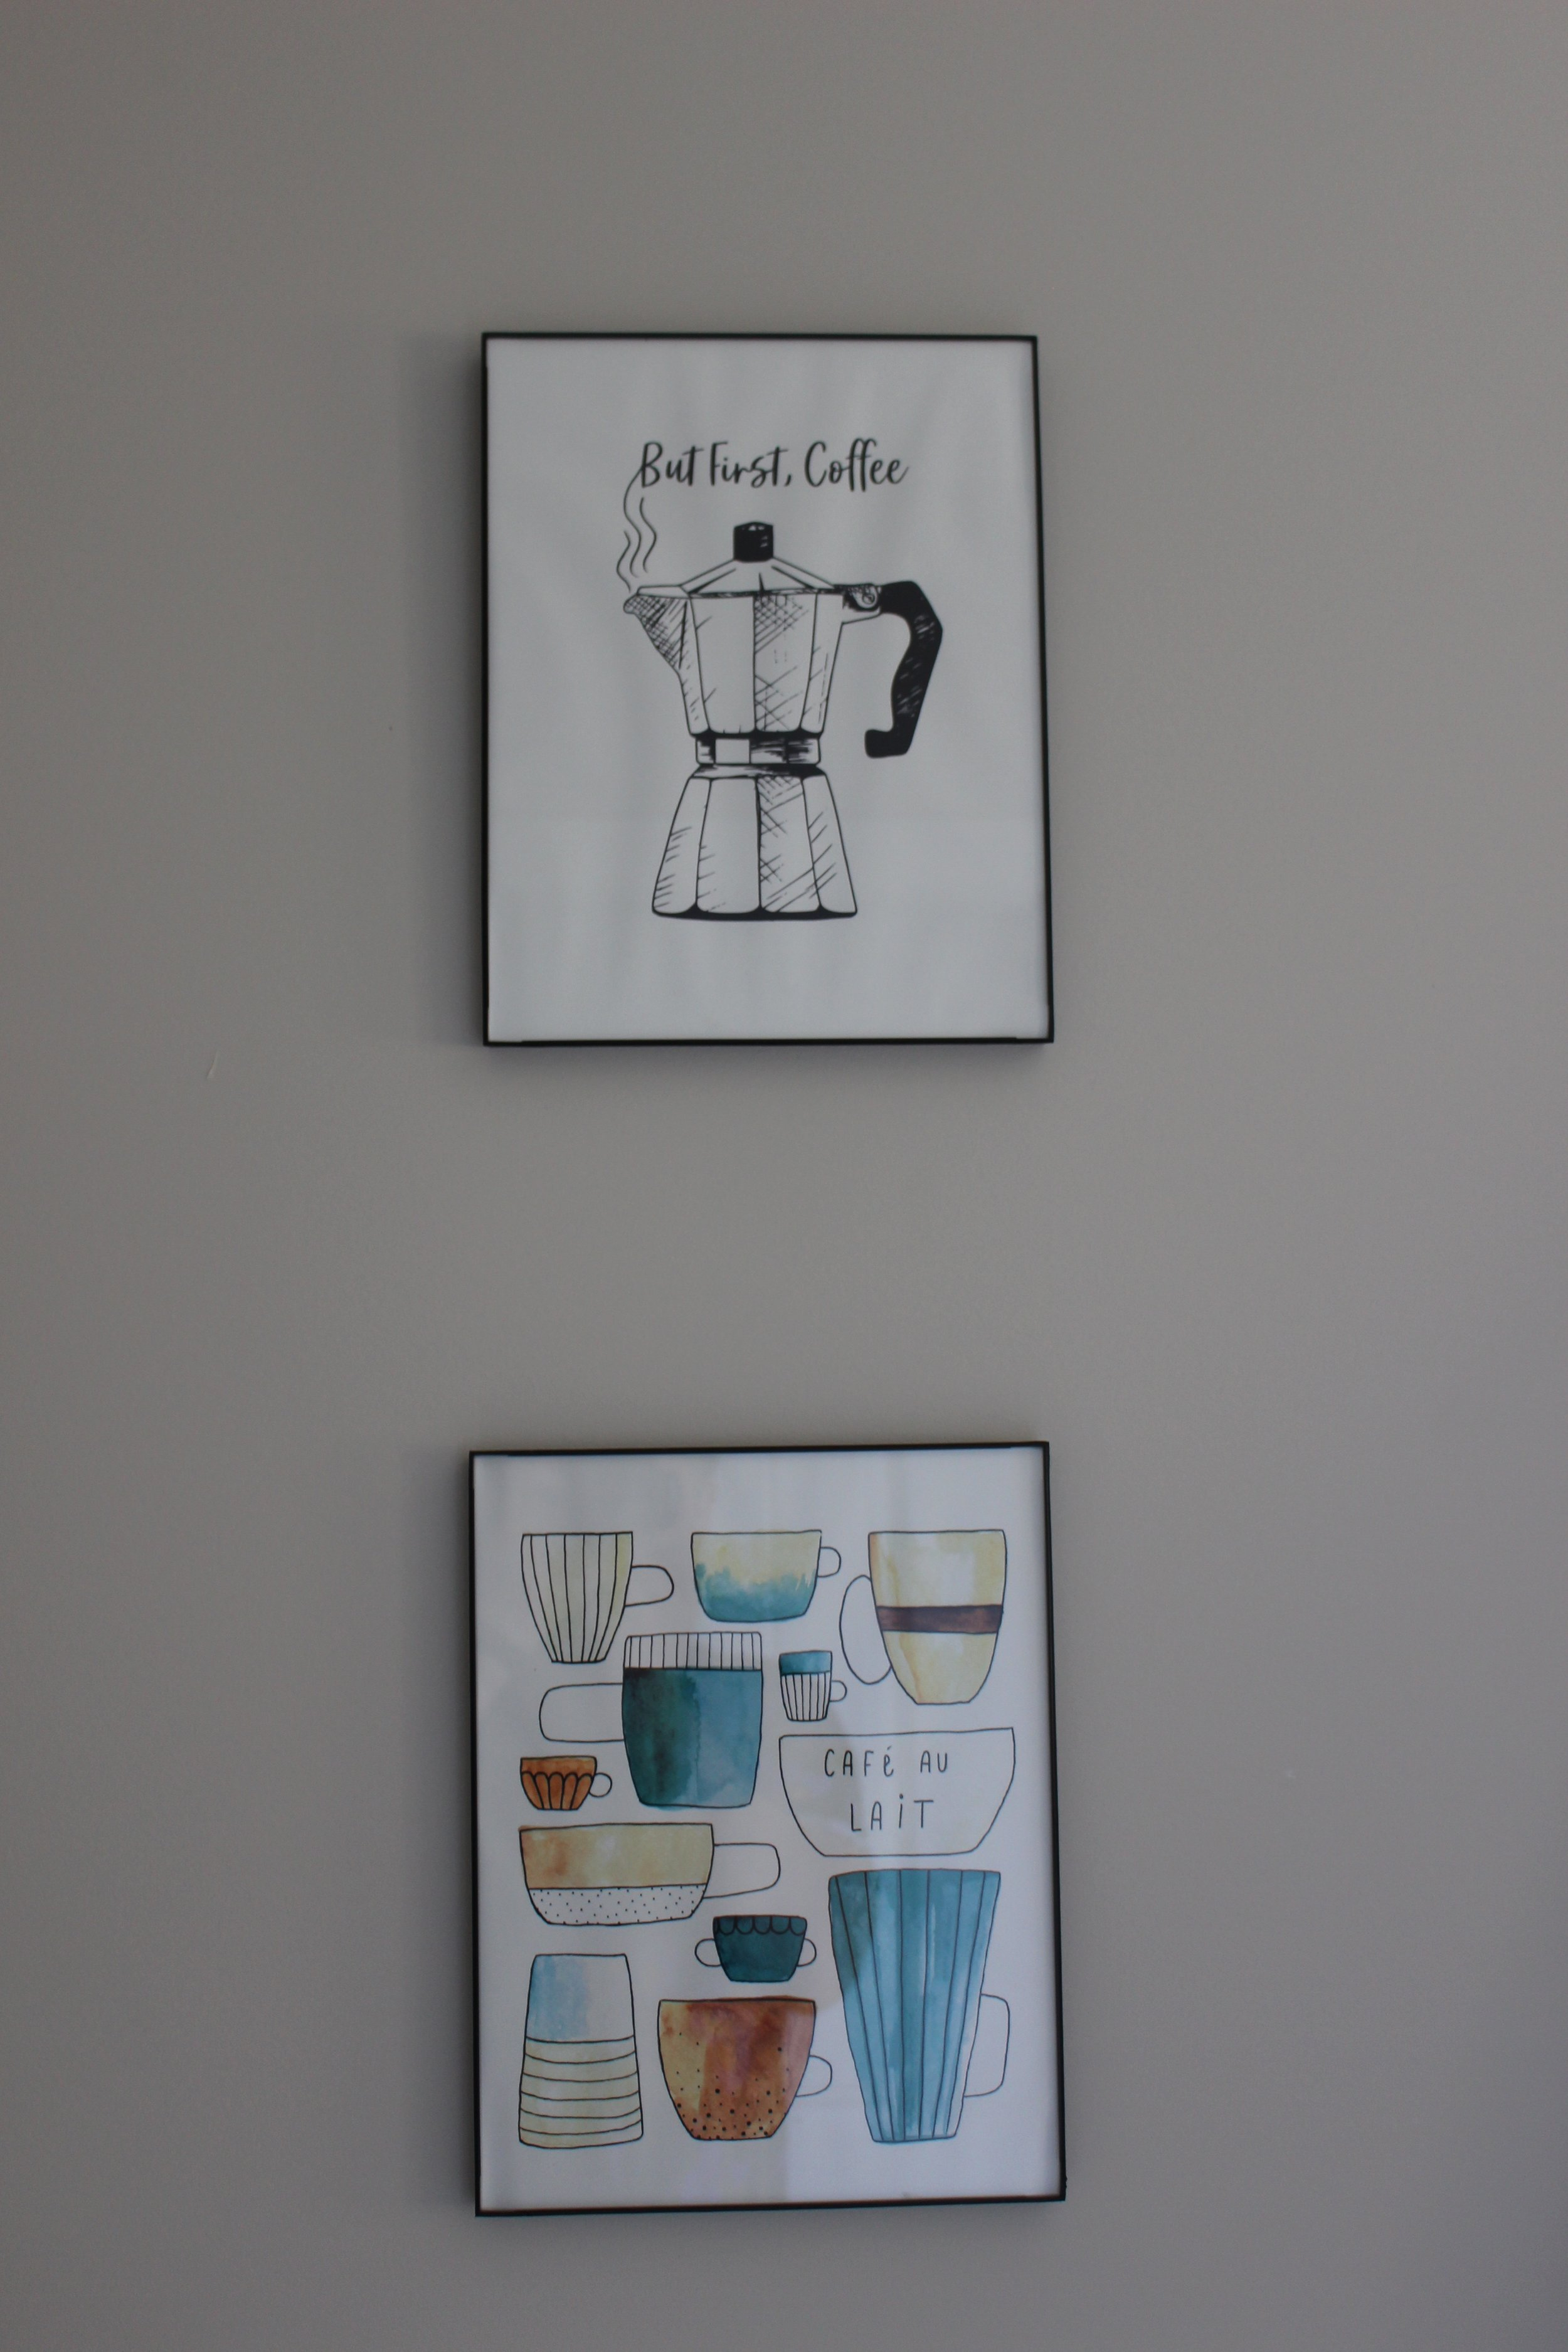 Such attention to the cutest details like these framed prints